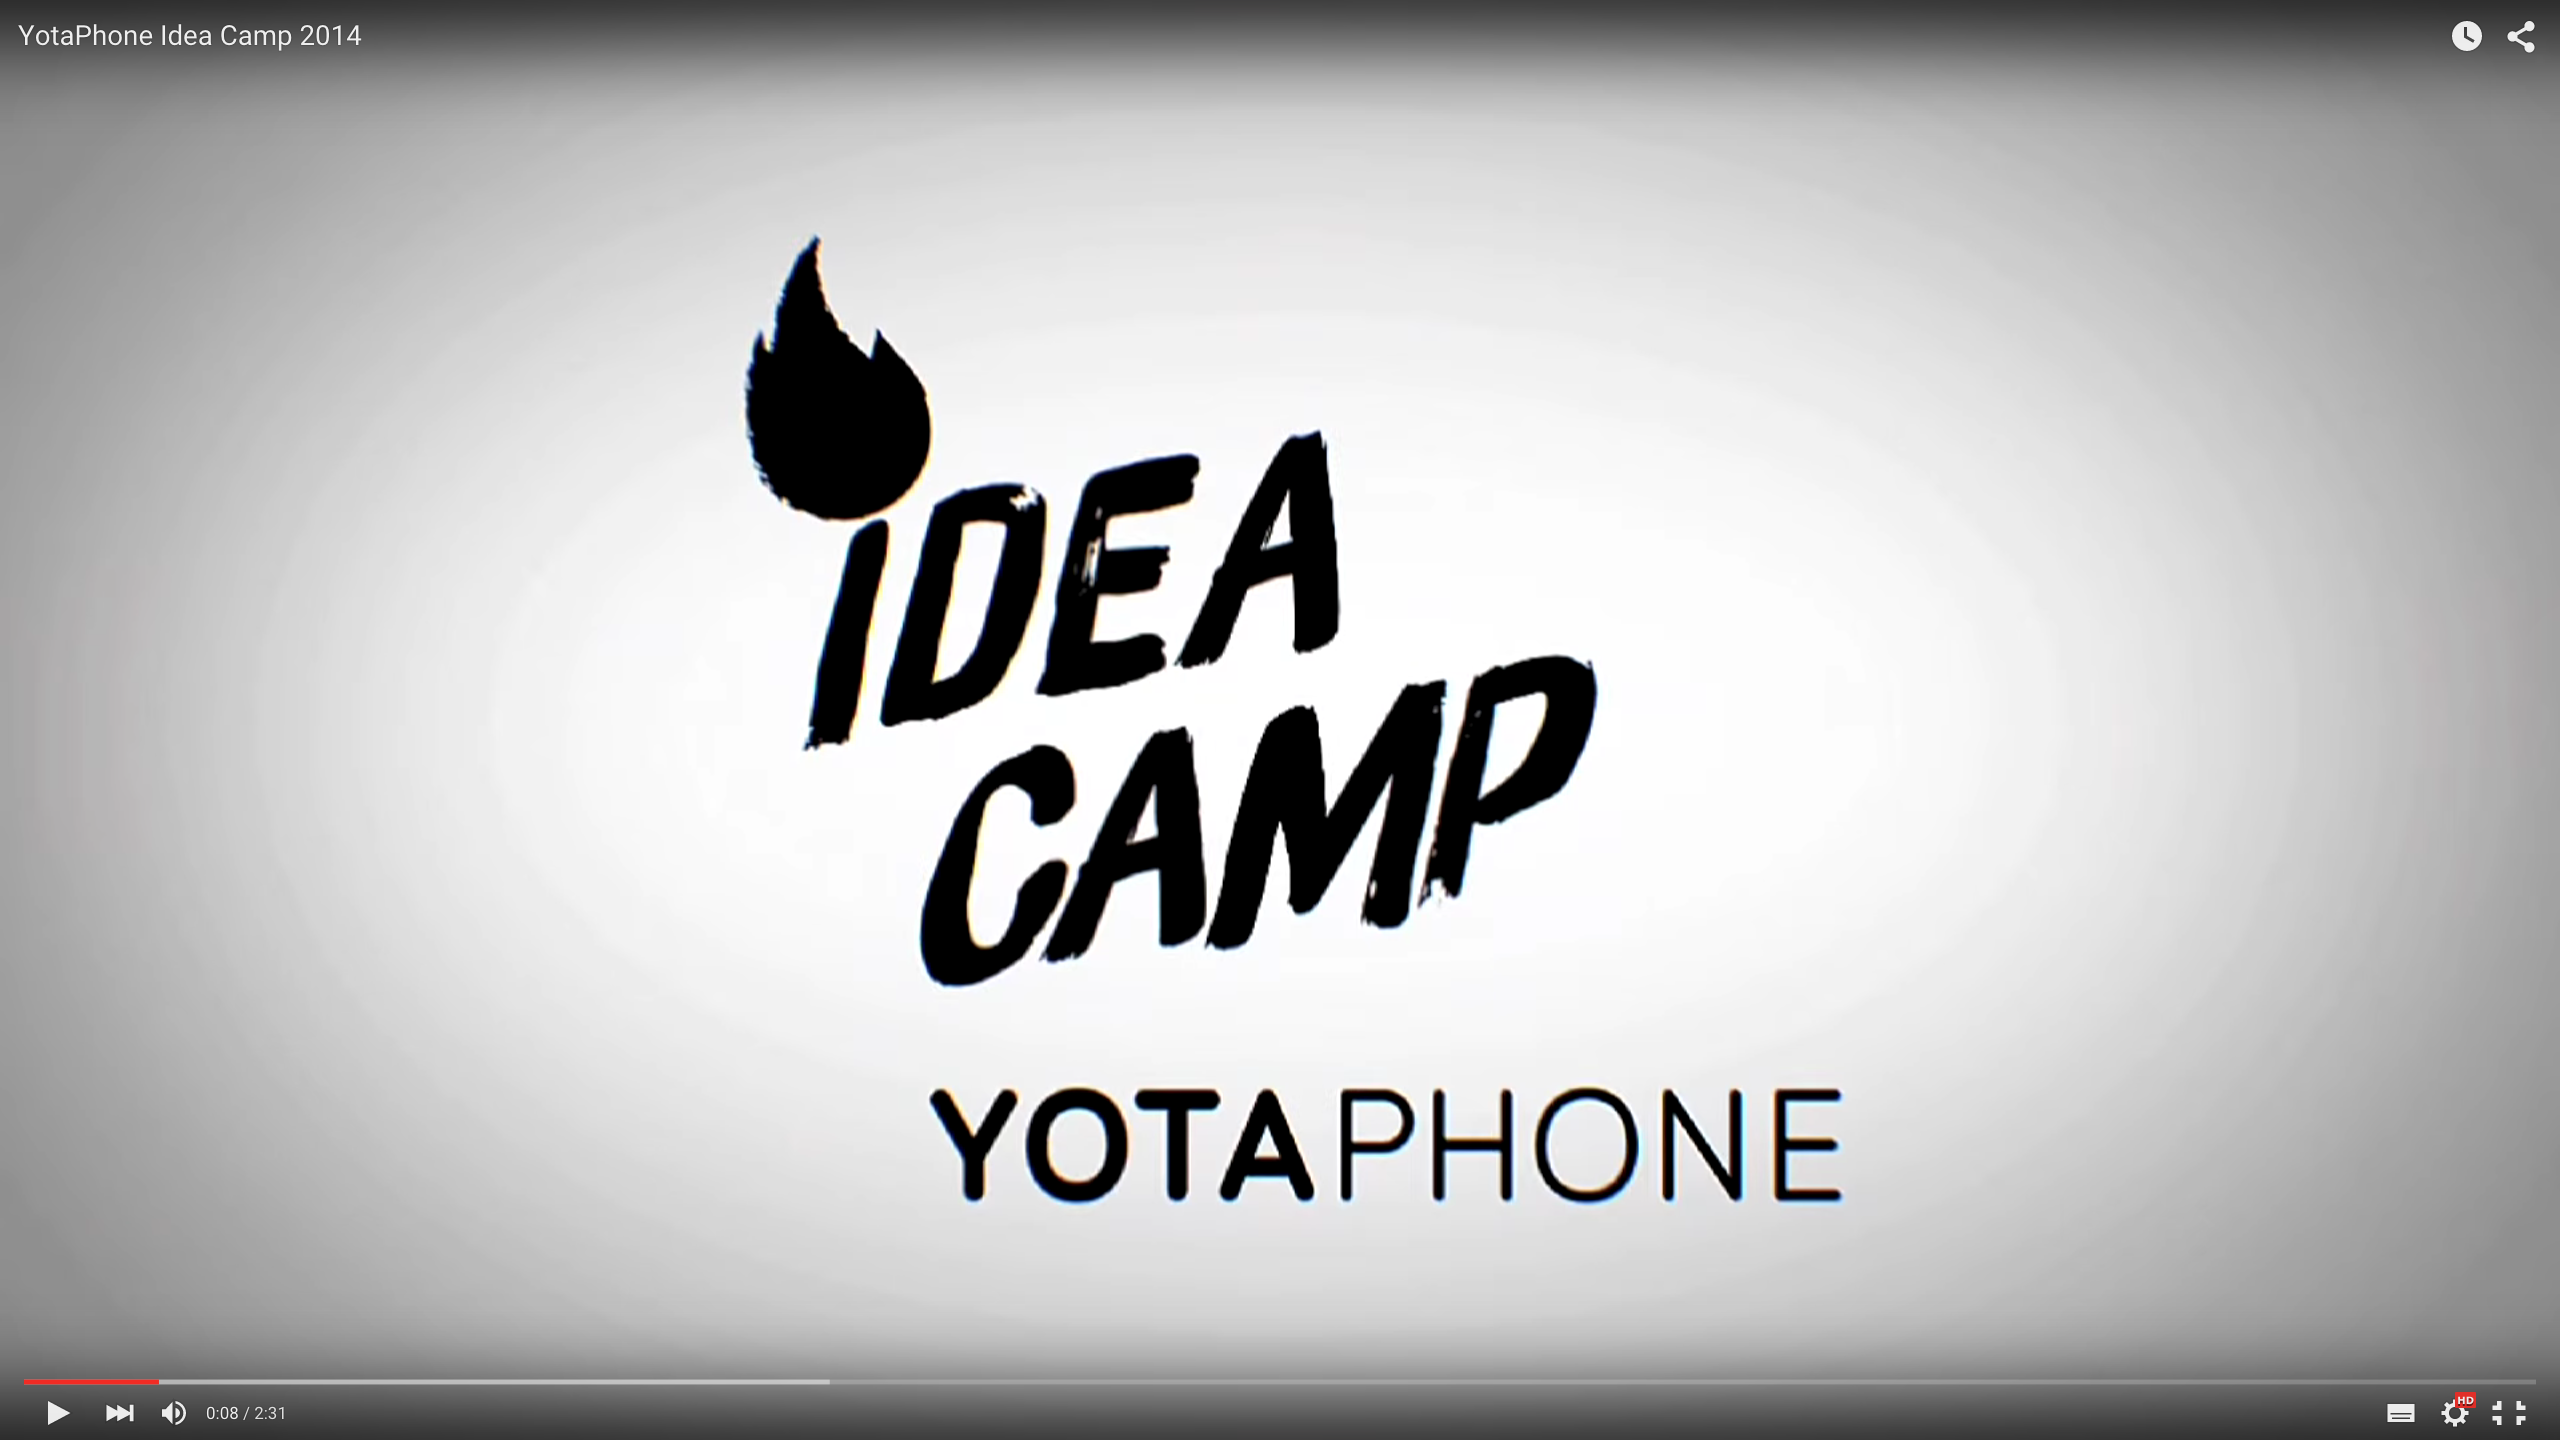 YotaPhone Idea Camp 2014